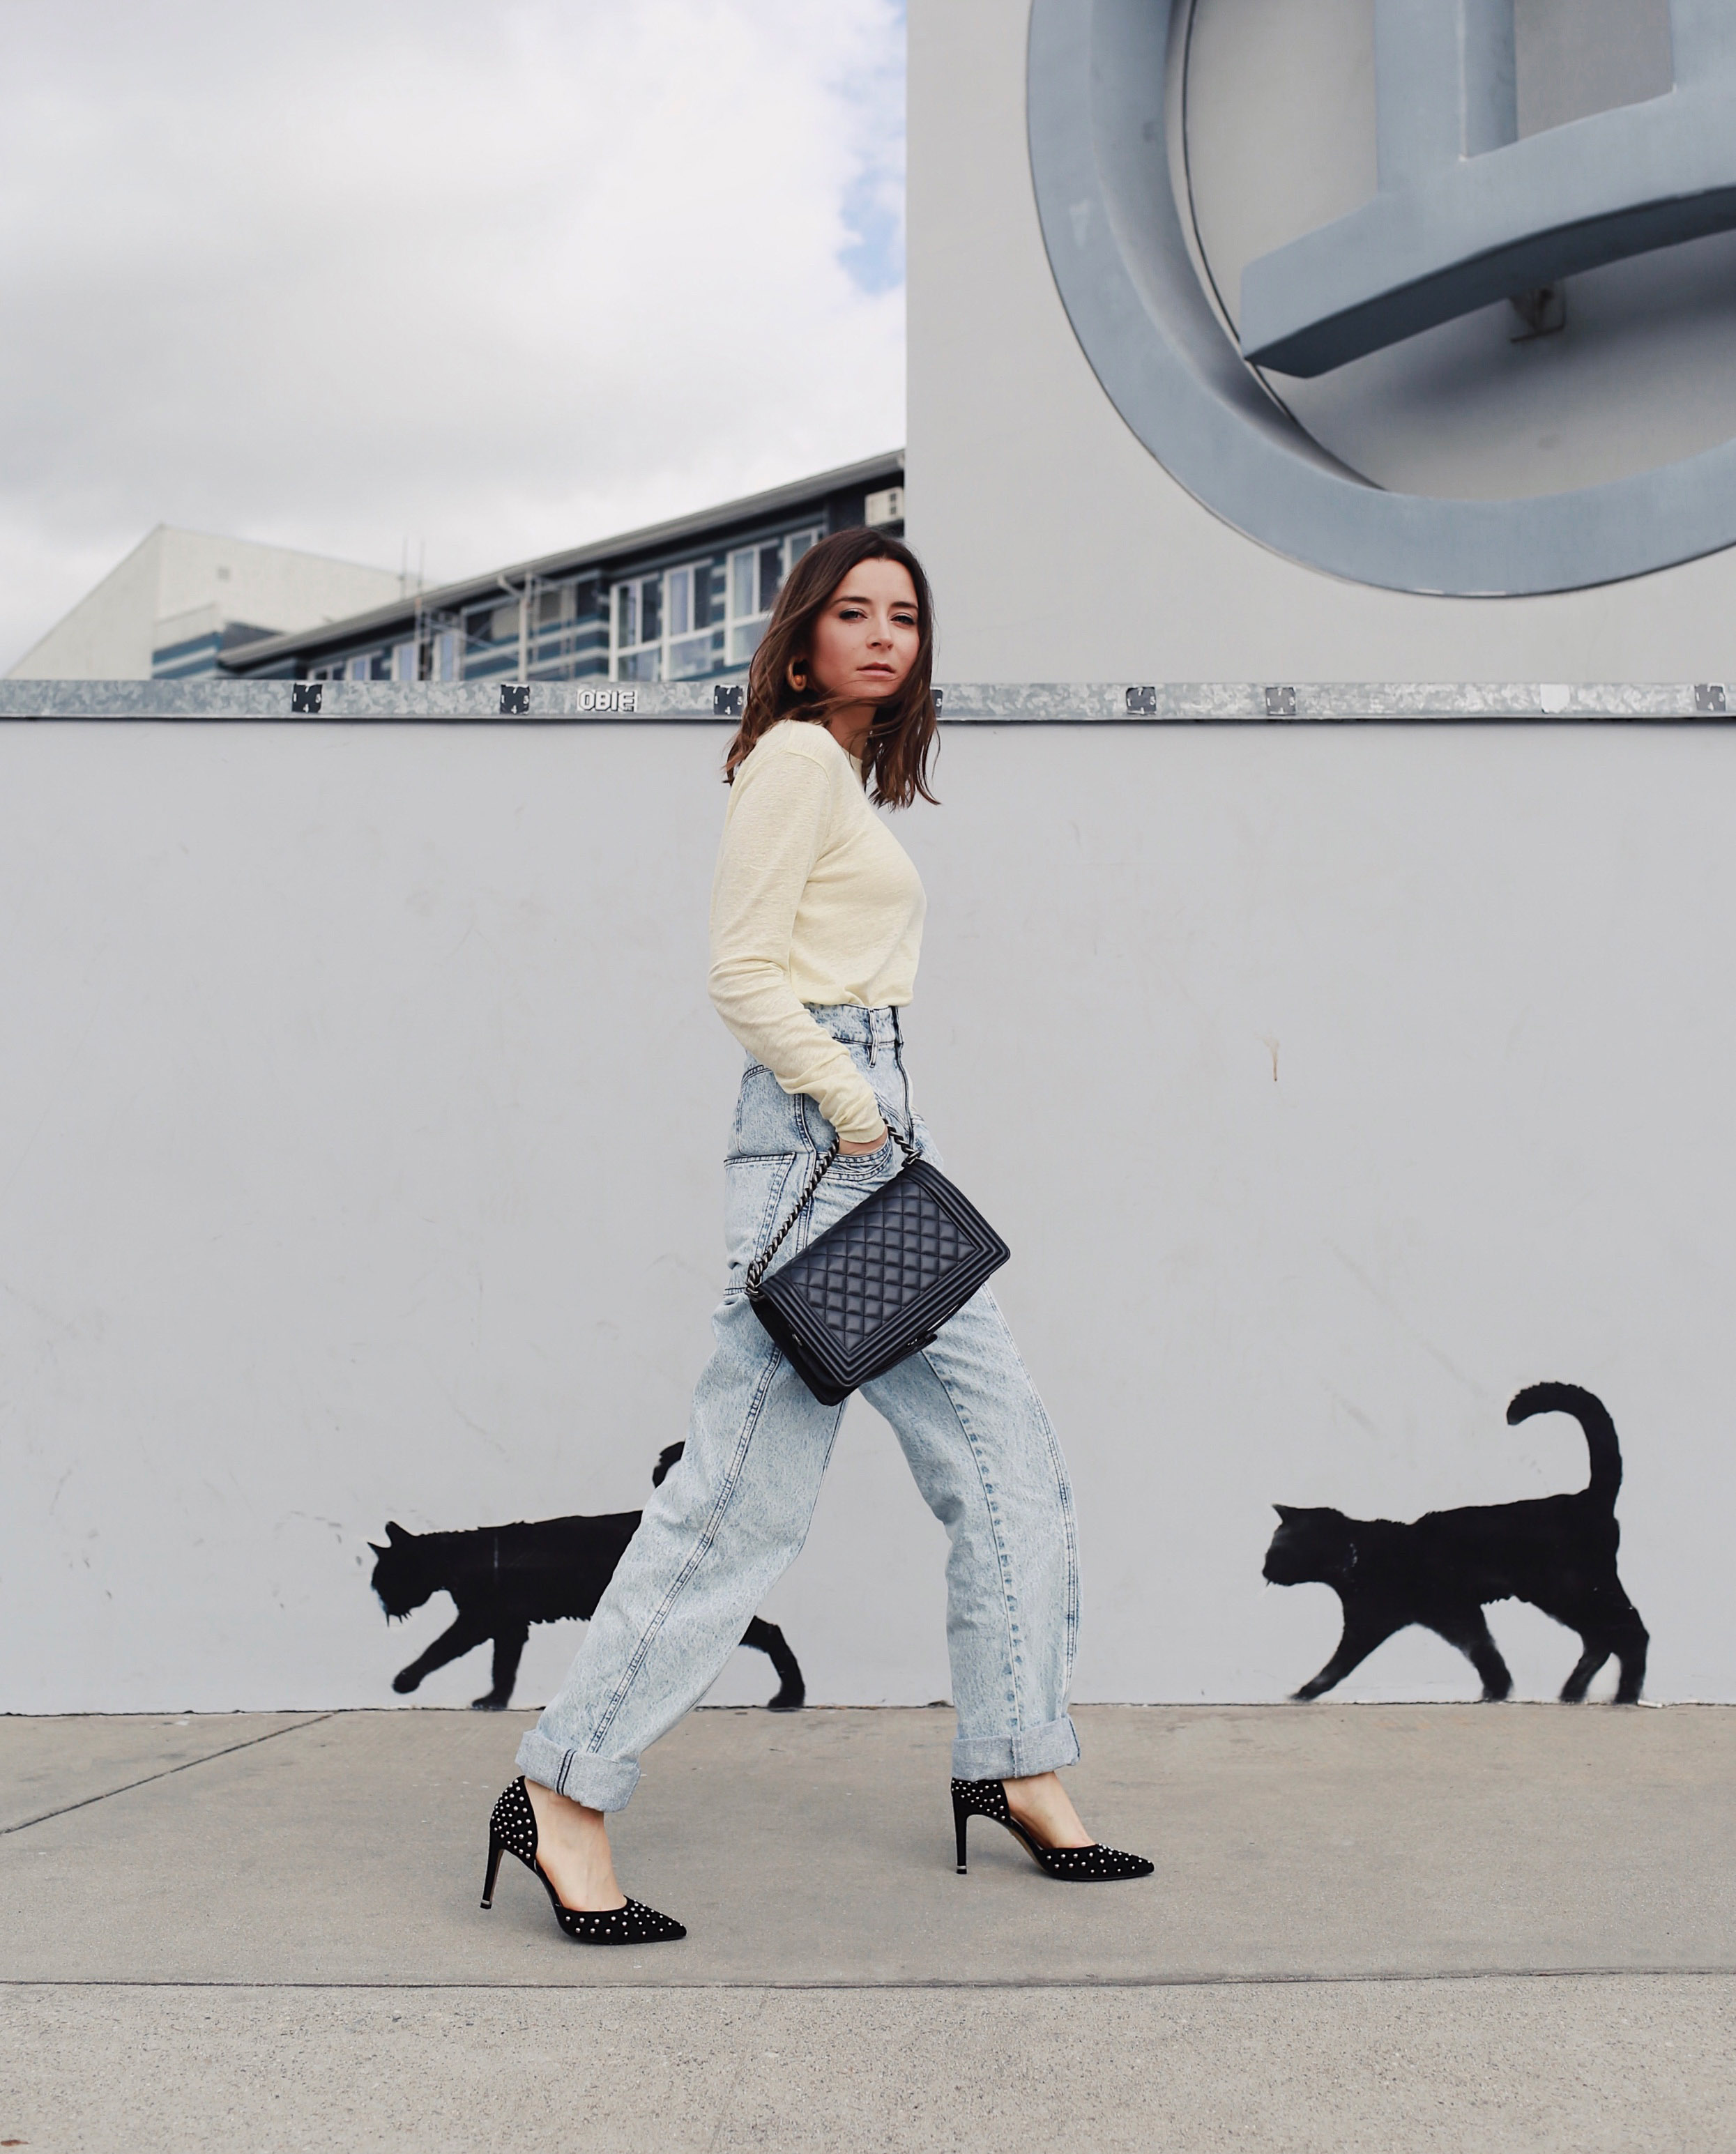 85 Riley studded d Orsay pumps Kenneth Cole Tech cole footwear Riley shoes comfortable versatile stylish pumps perfect to commute #HeelsForTheHustle #WhatMovesYou electric scouter commute